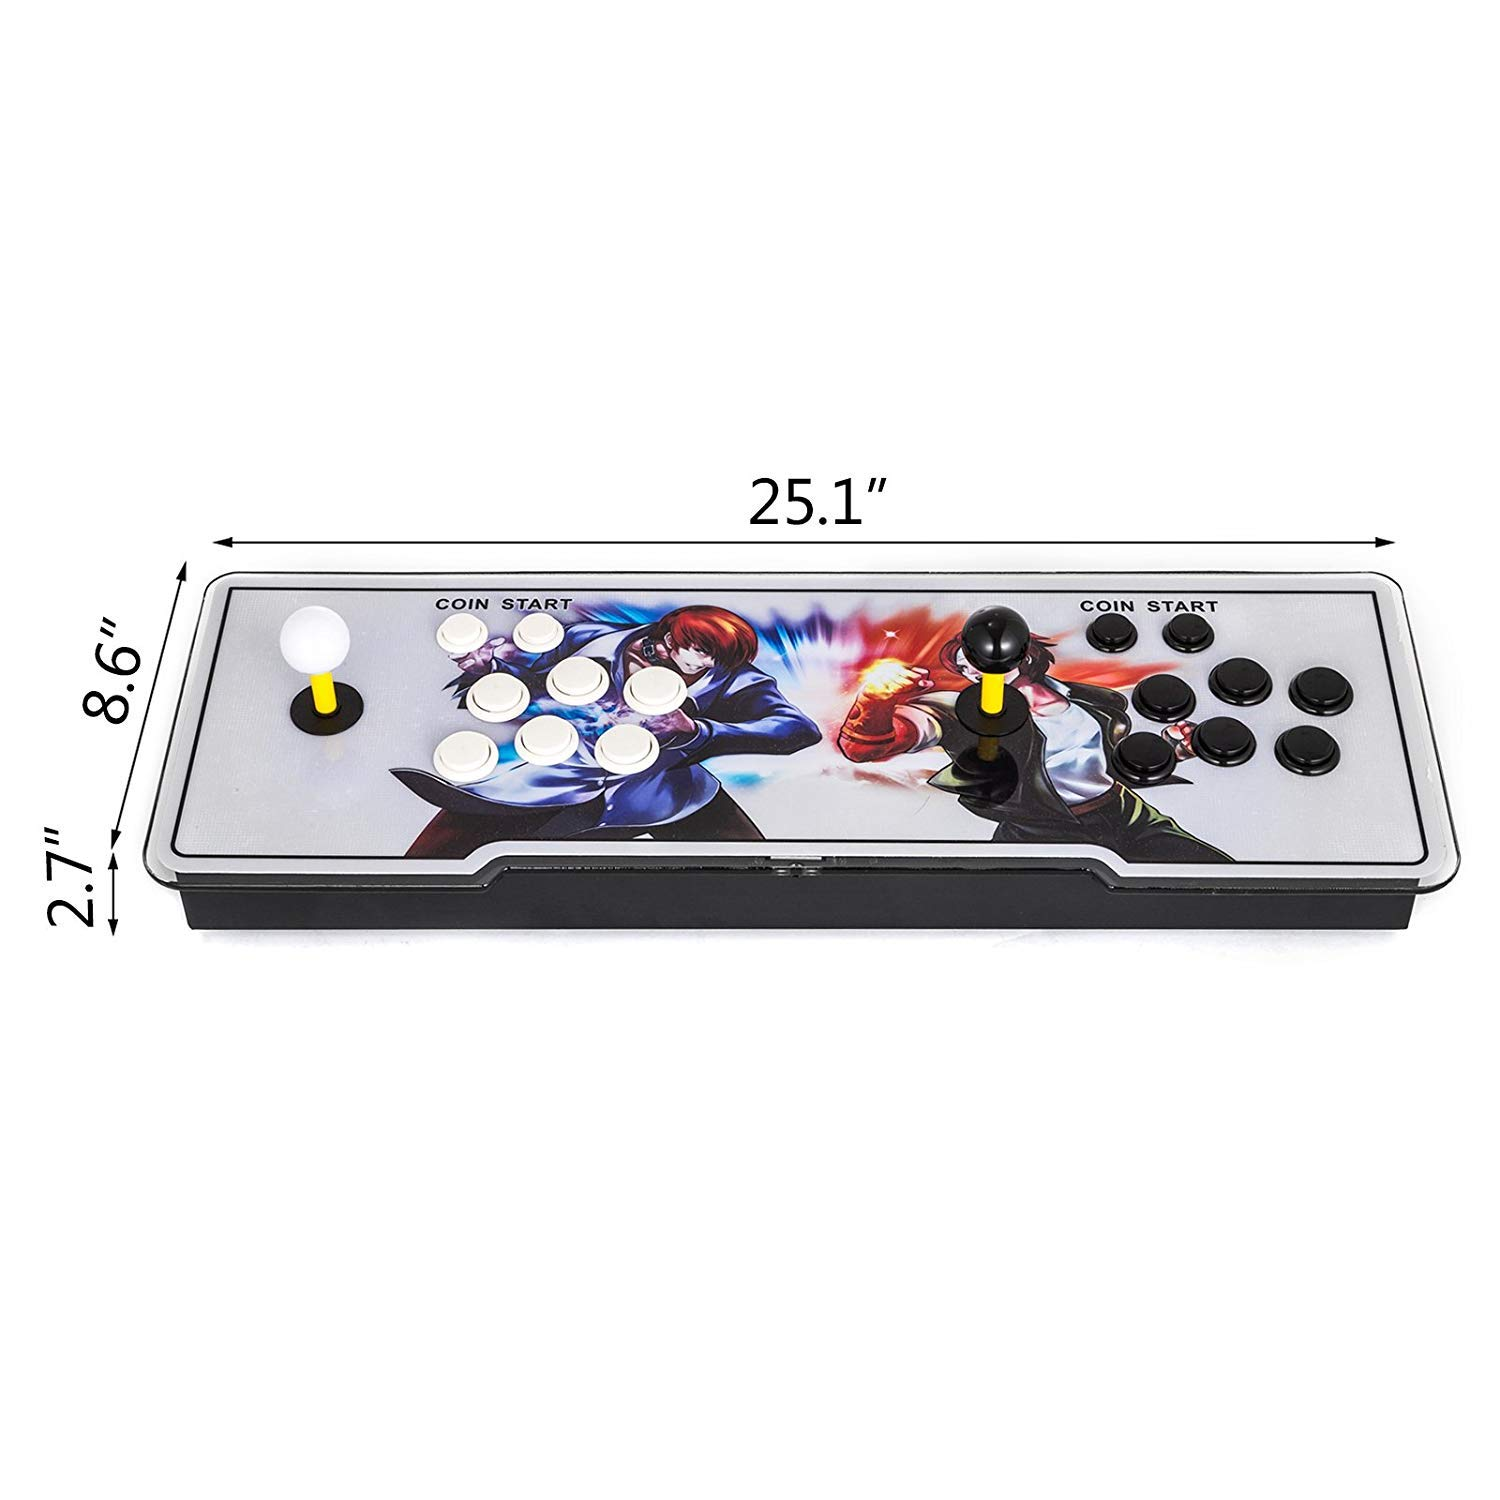 Happybuy Pandora Box 2222 in 1 Arcade Console 9S+ Pandoras Box 2 Players Retro Arcade Station x Full HD Video Game Console with Arcade Joystick Support HDMI VGA USB by Happybuy (Image #2)